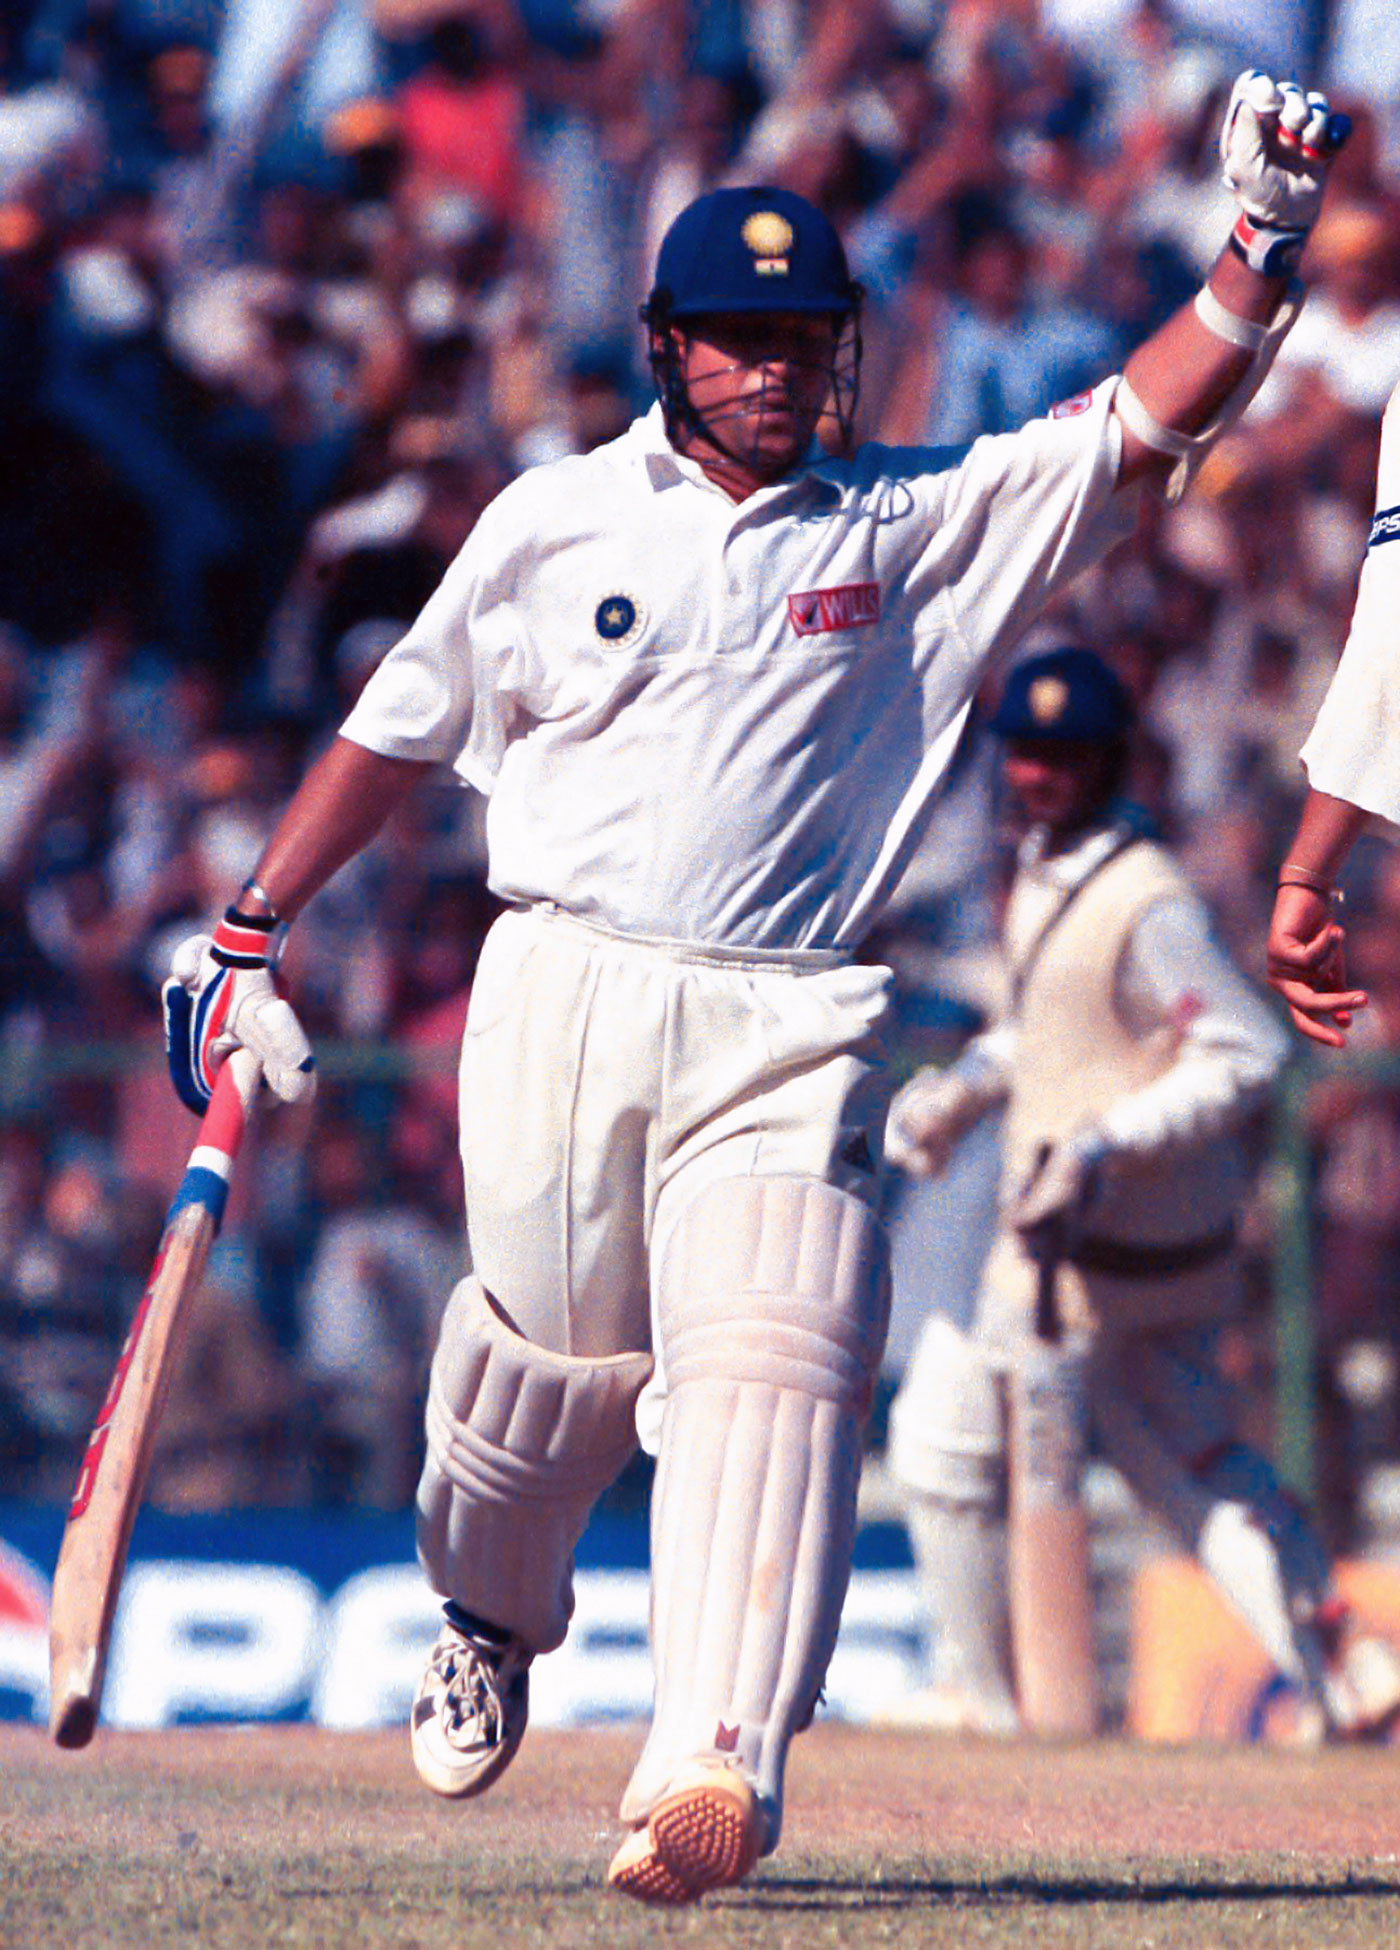 Sachin Tendulkar, hampered by a bad back, reaches his hundred, India v Pakistan, 1st Test, Chennai, 4th day, January 31, 1999